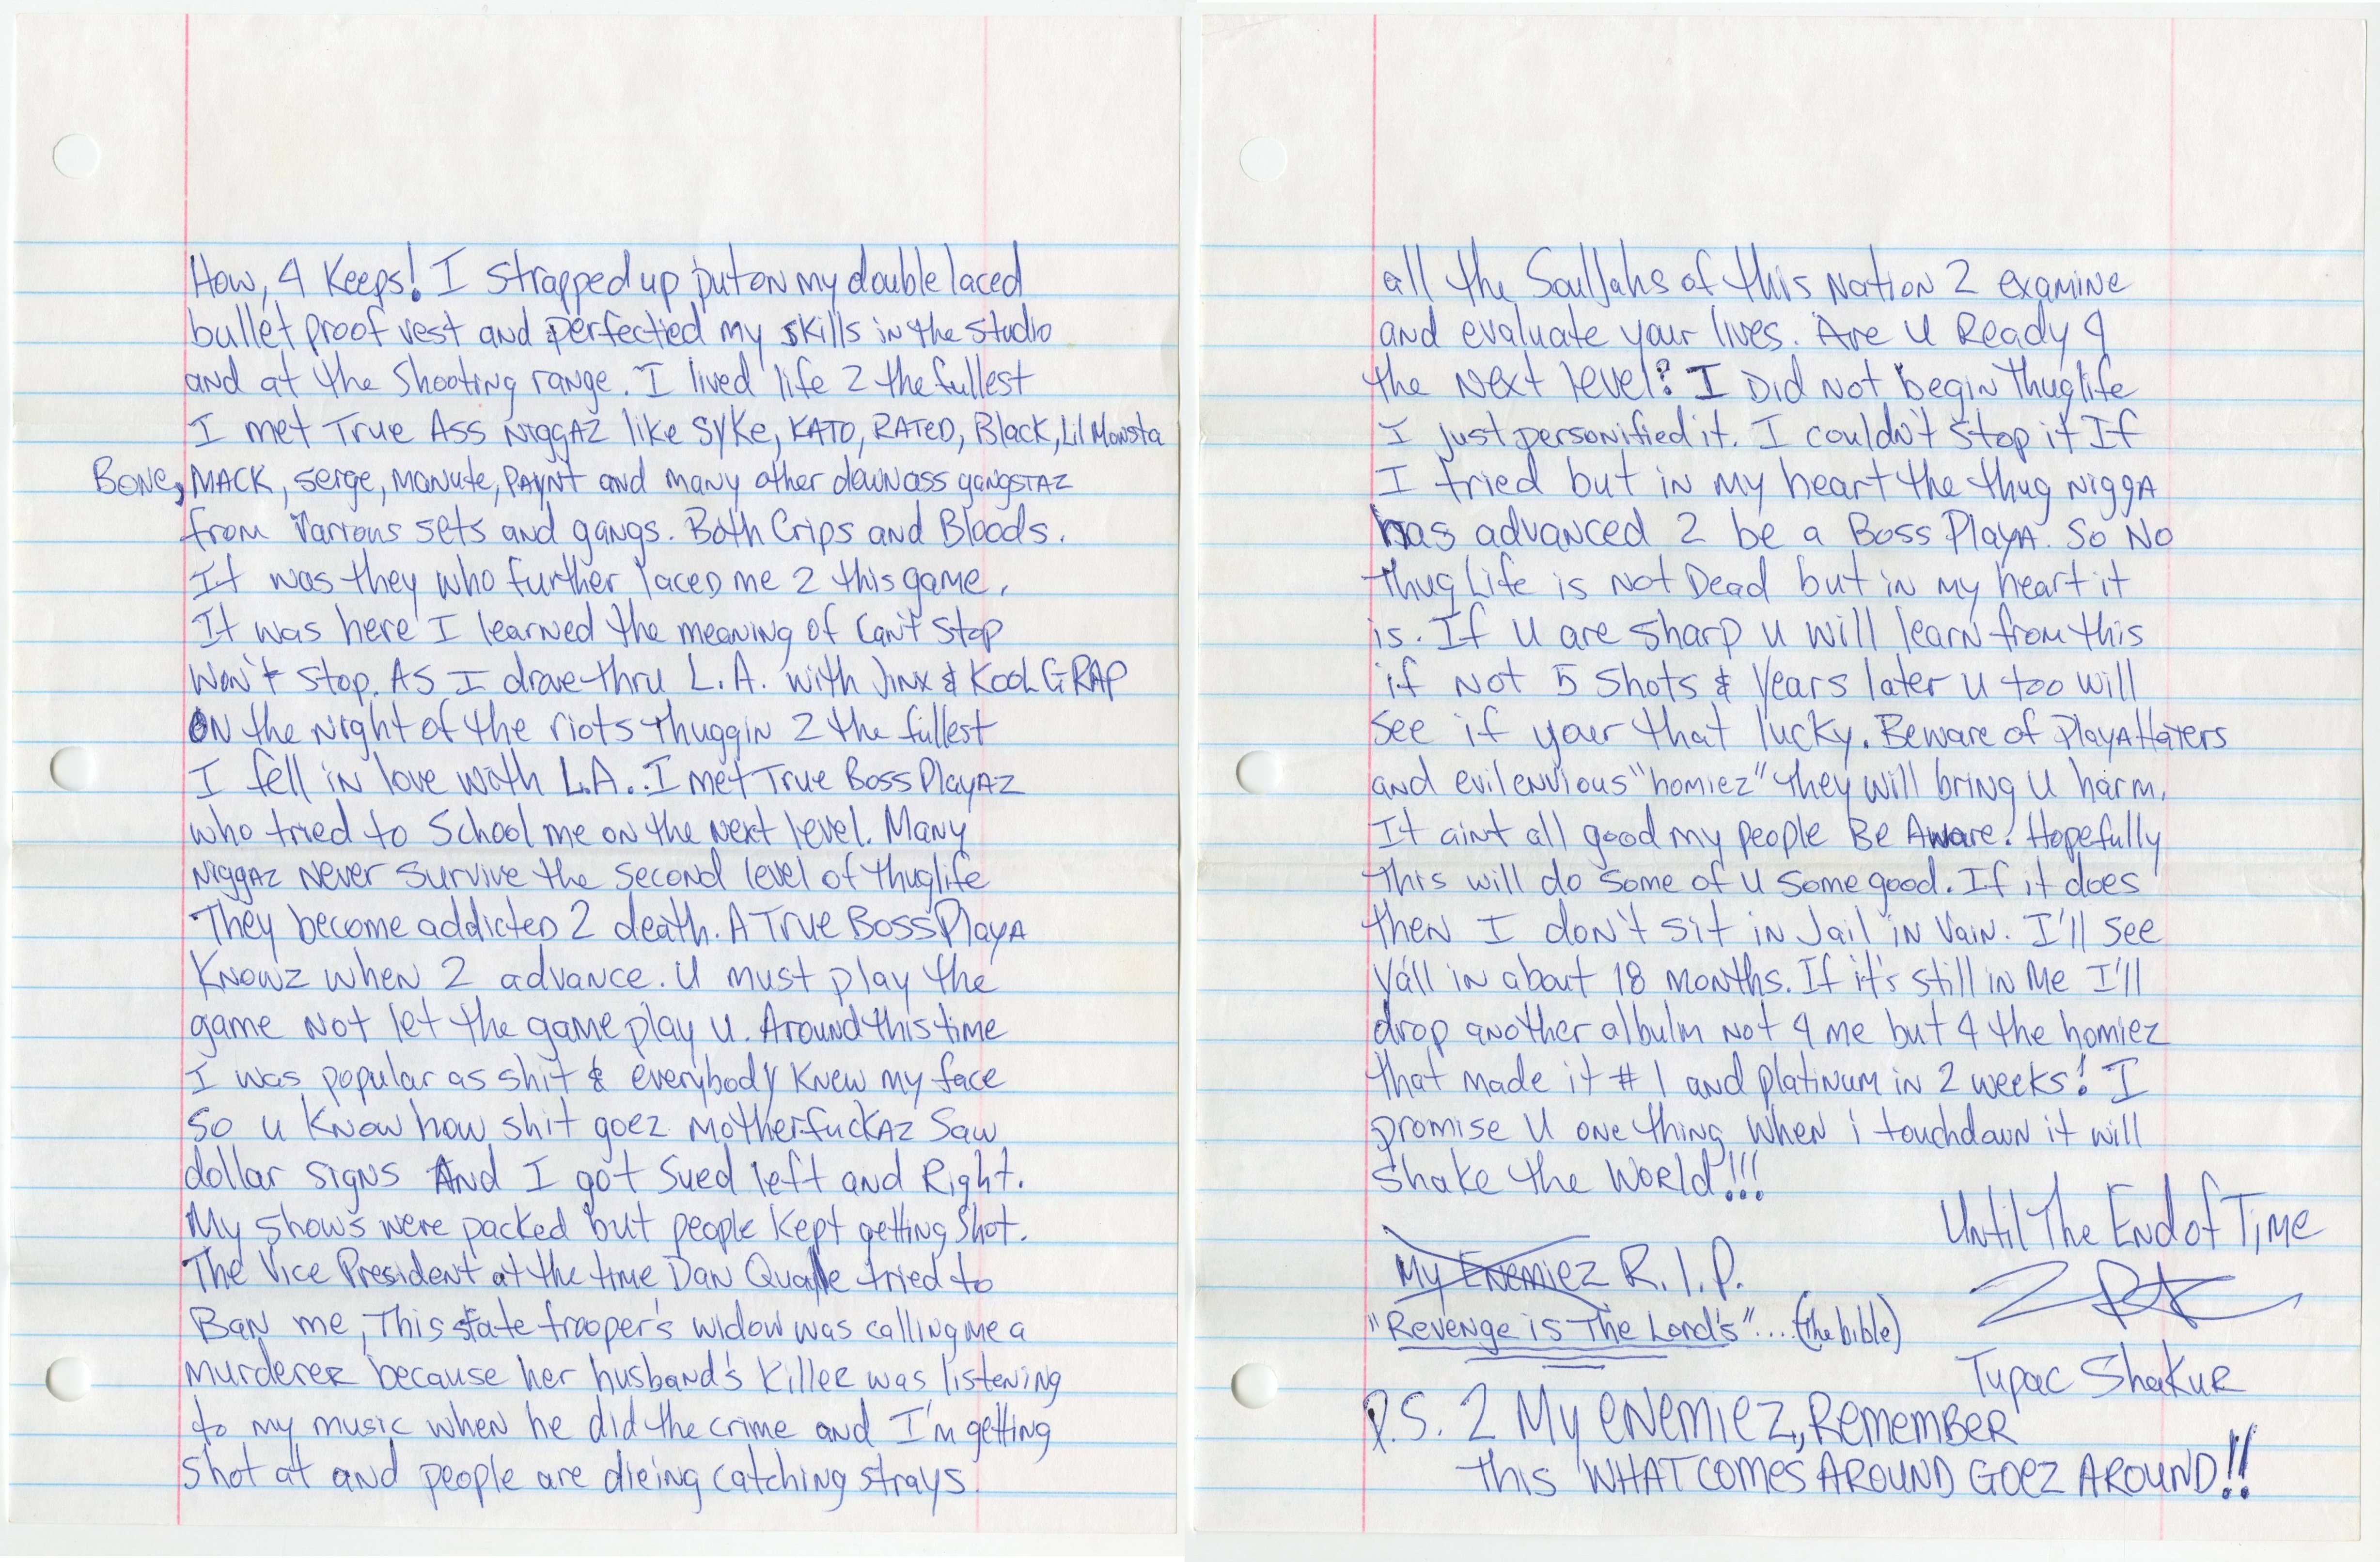 letter to pac lyrics letter tupac shakur wrote from prison sold at auction for 23253 | igosmxdf1frdsuq3jeuv